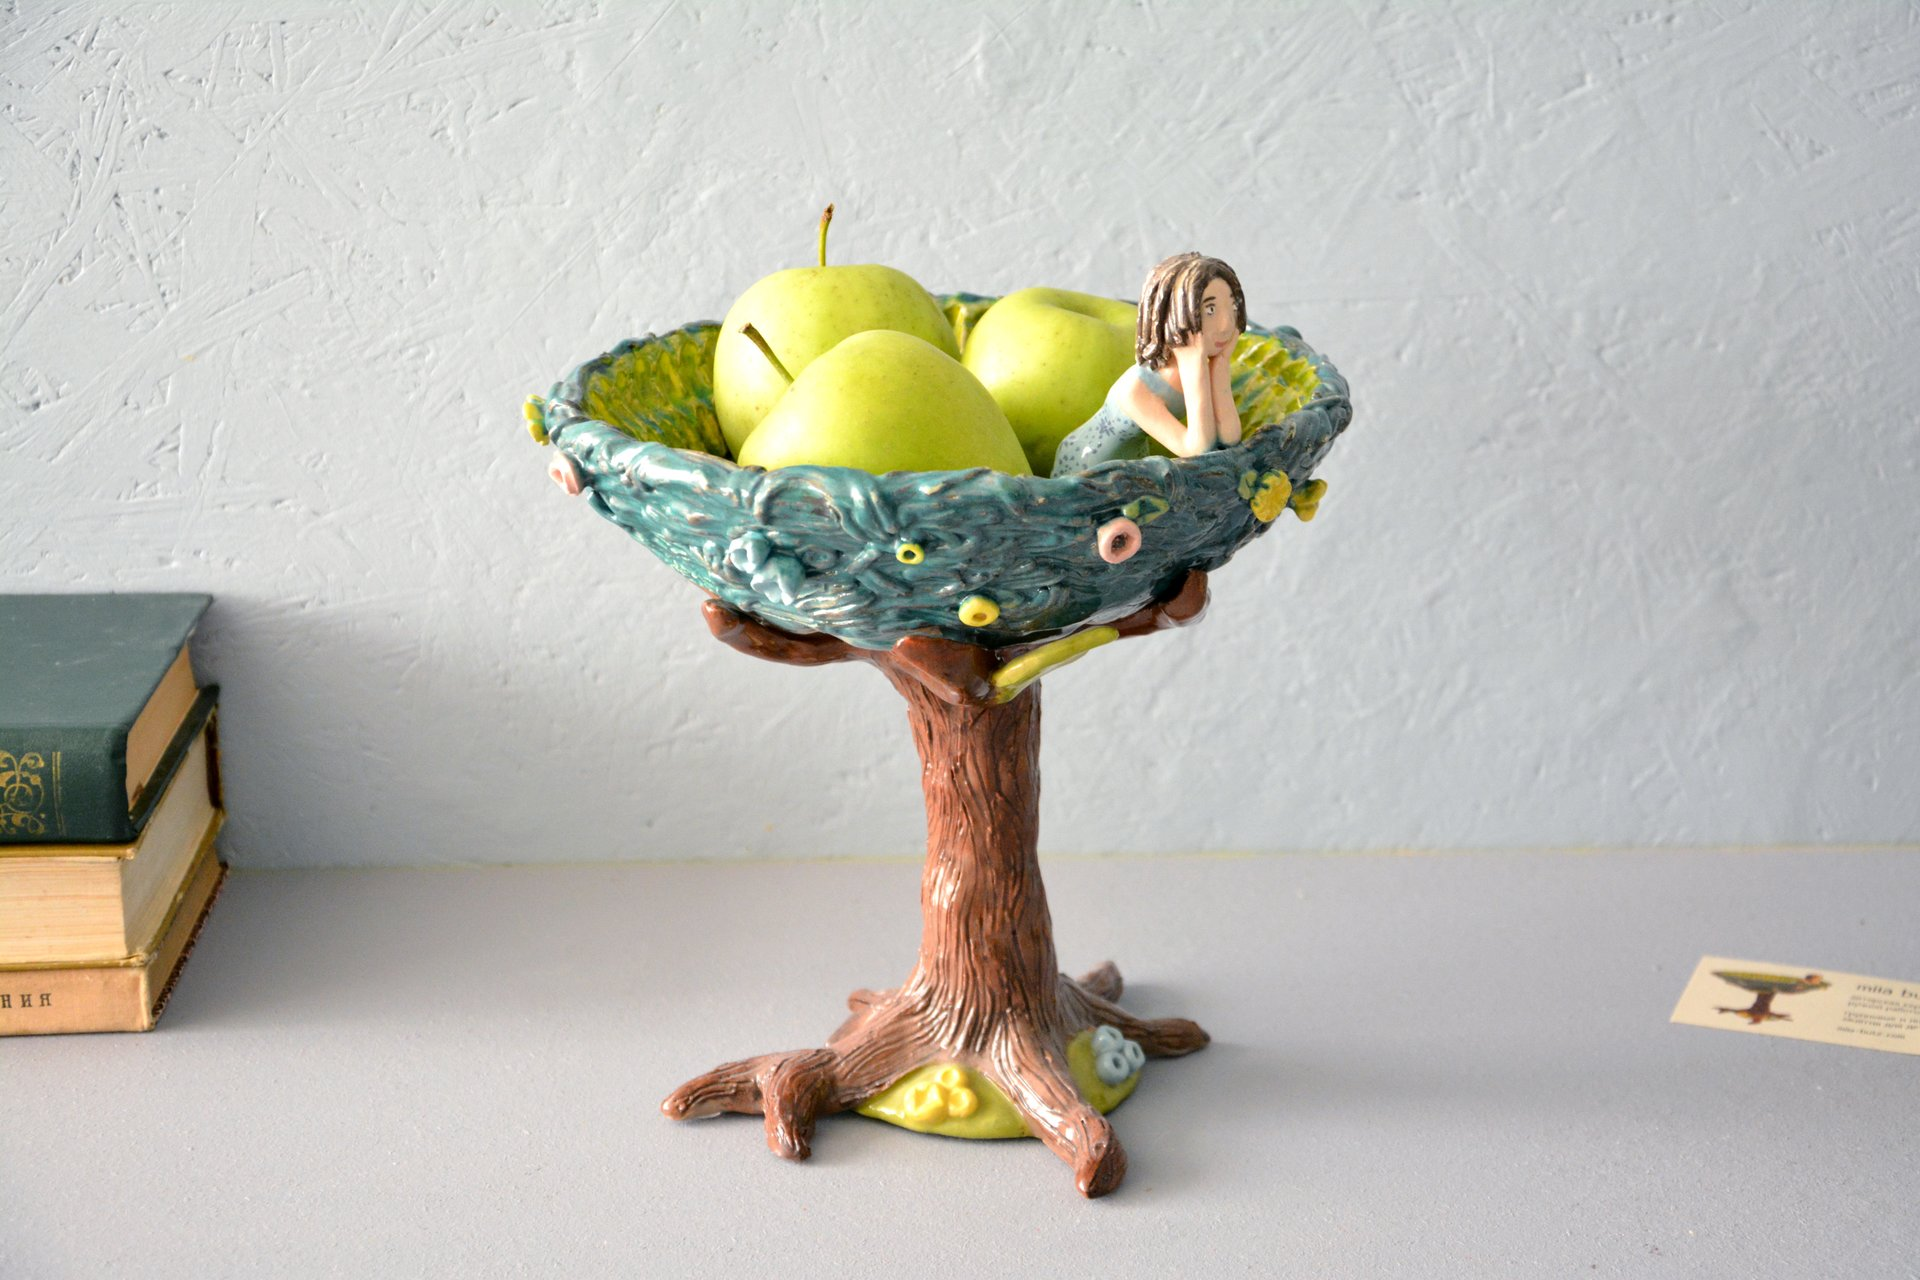 Vase for fruits, height - 21.5 cm, diameter - 21.5 cm, photo 1 of 3.